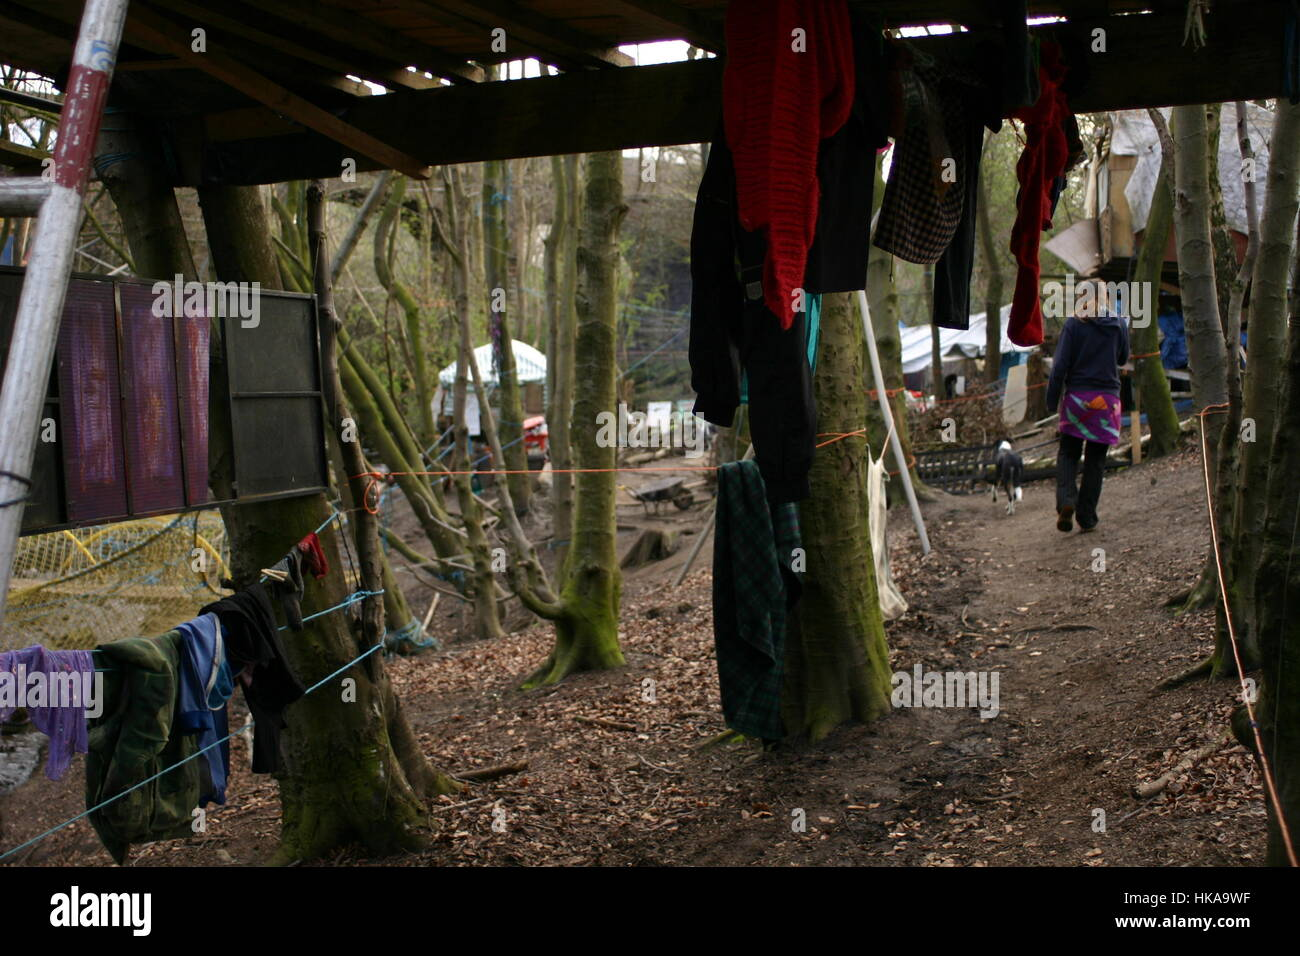 Bilston Glen Woodland Camp August 2005 feature on campdwellers staging a protest to block the constructioin of a - Stock Image